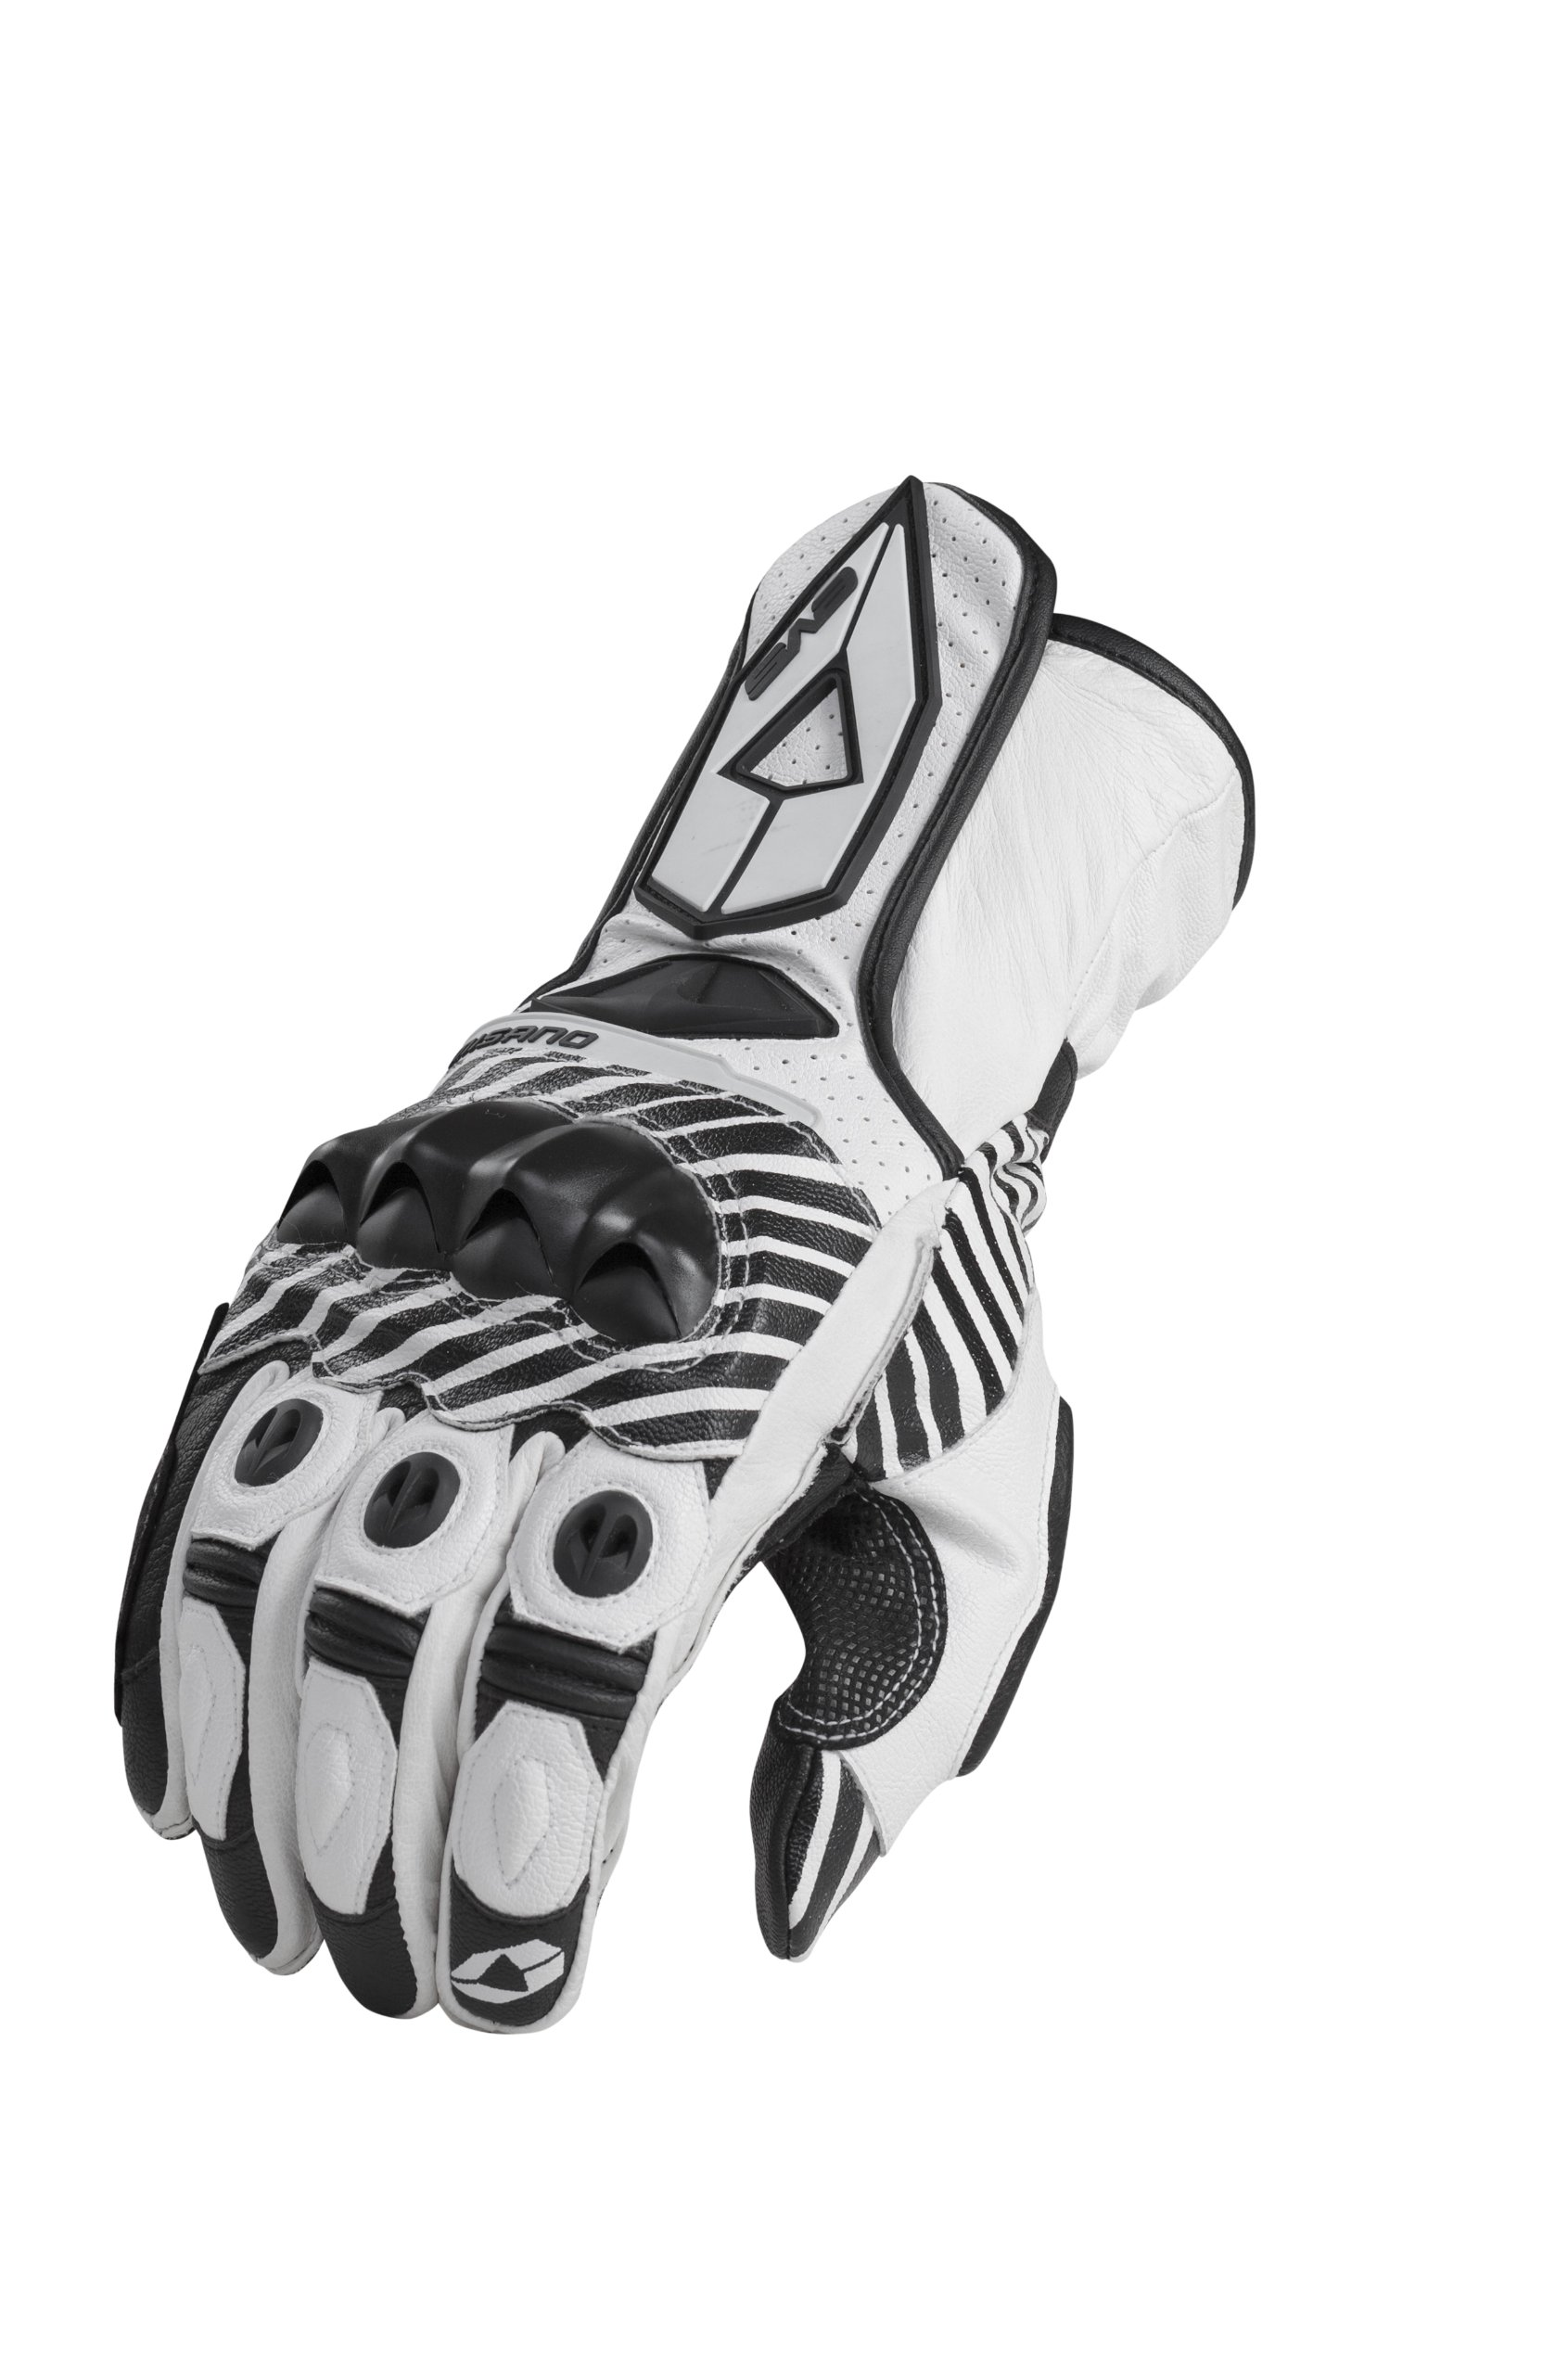 EVS Sports Misano Street Gloves (White, X-Large)